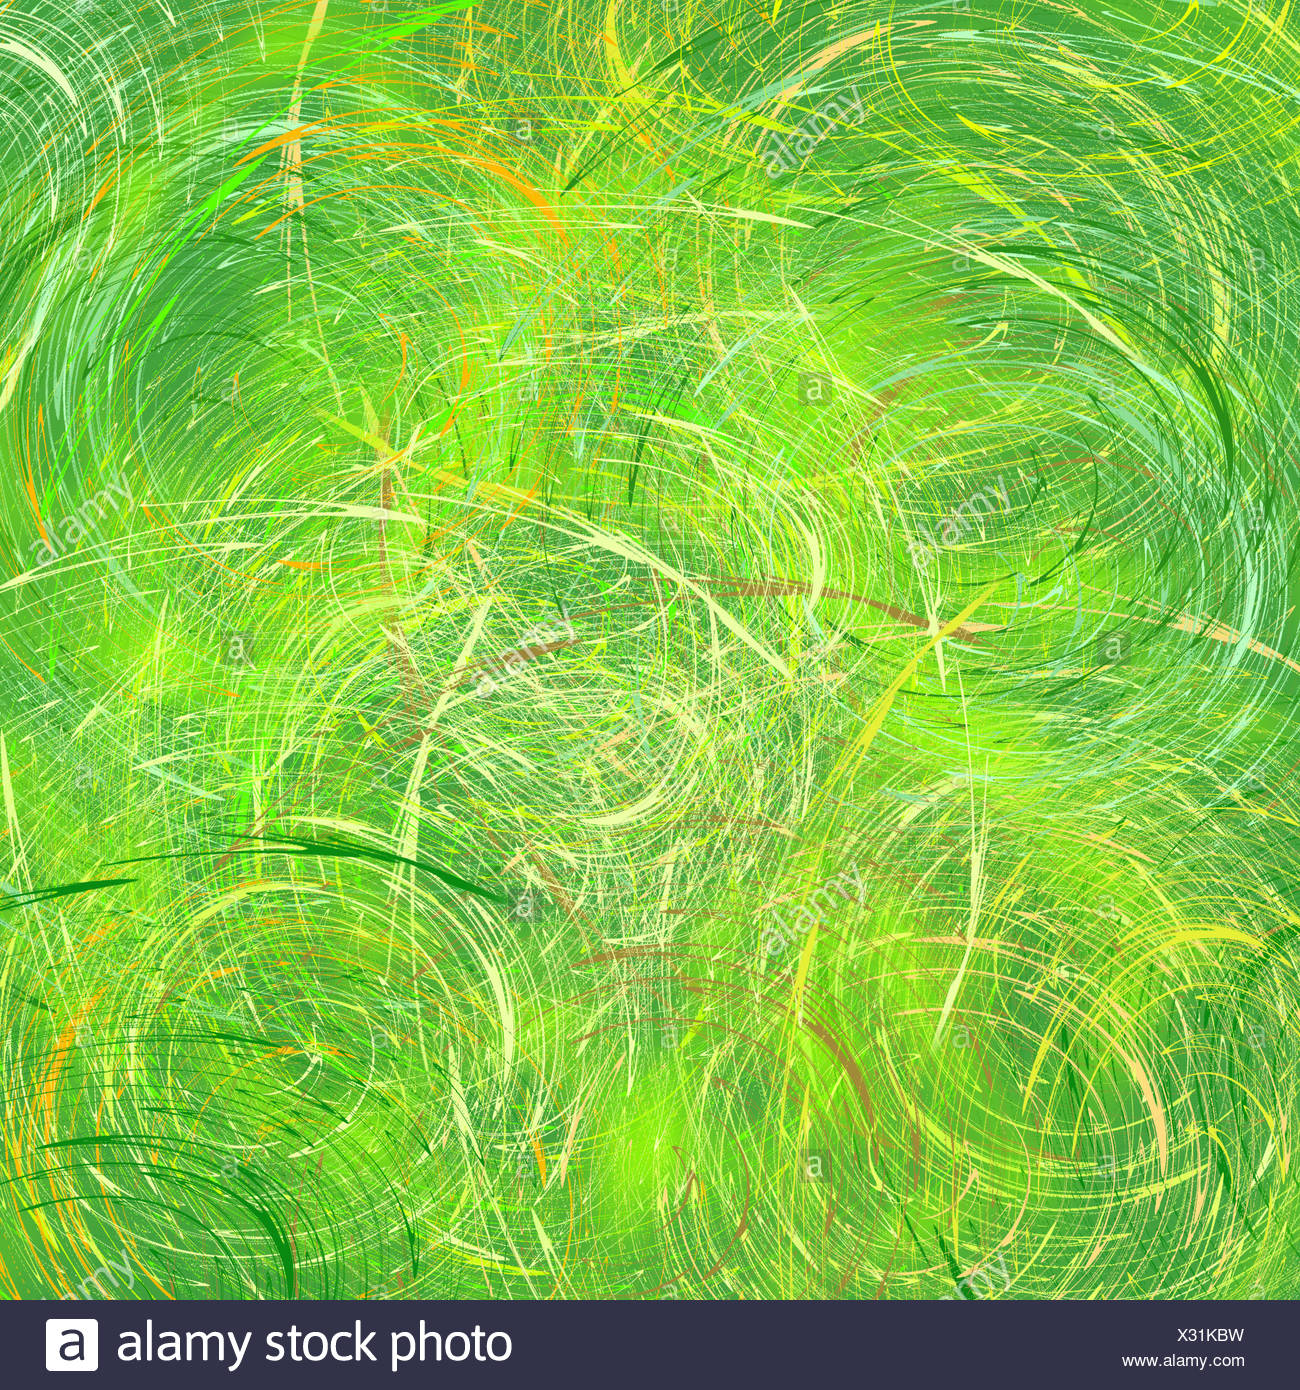 abstraction - Stock Image